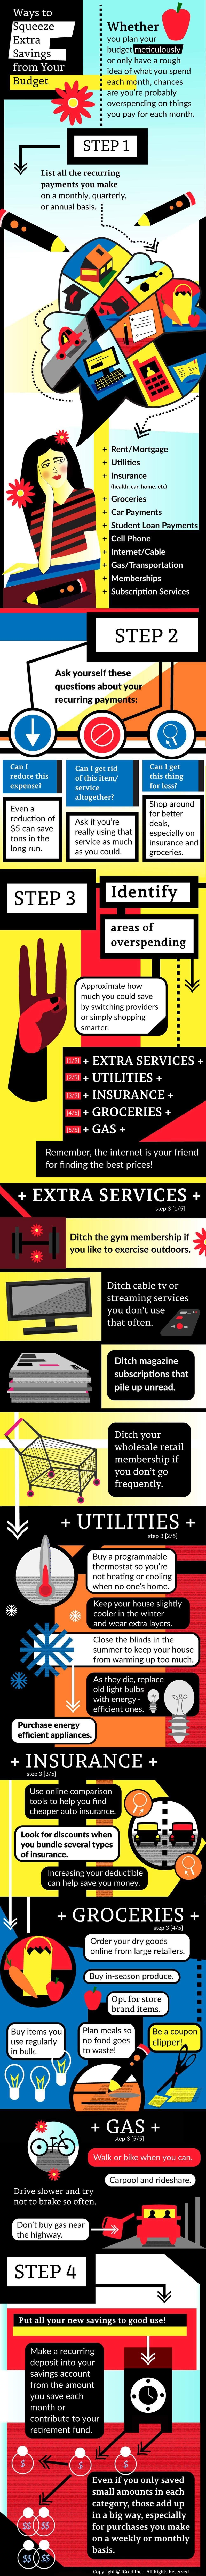 Ways to squeeze extra budget savings #infographic